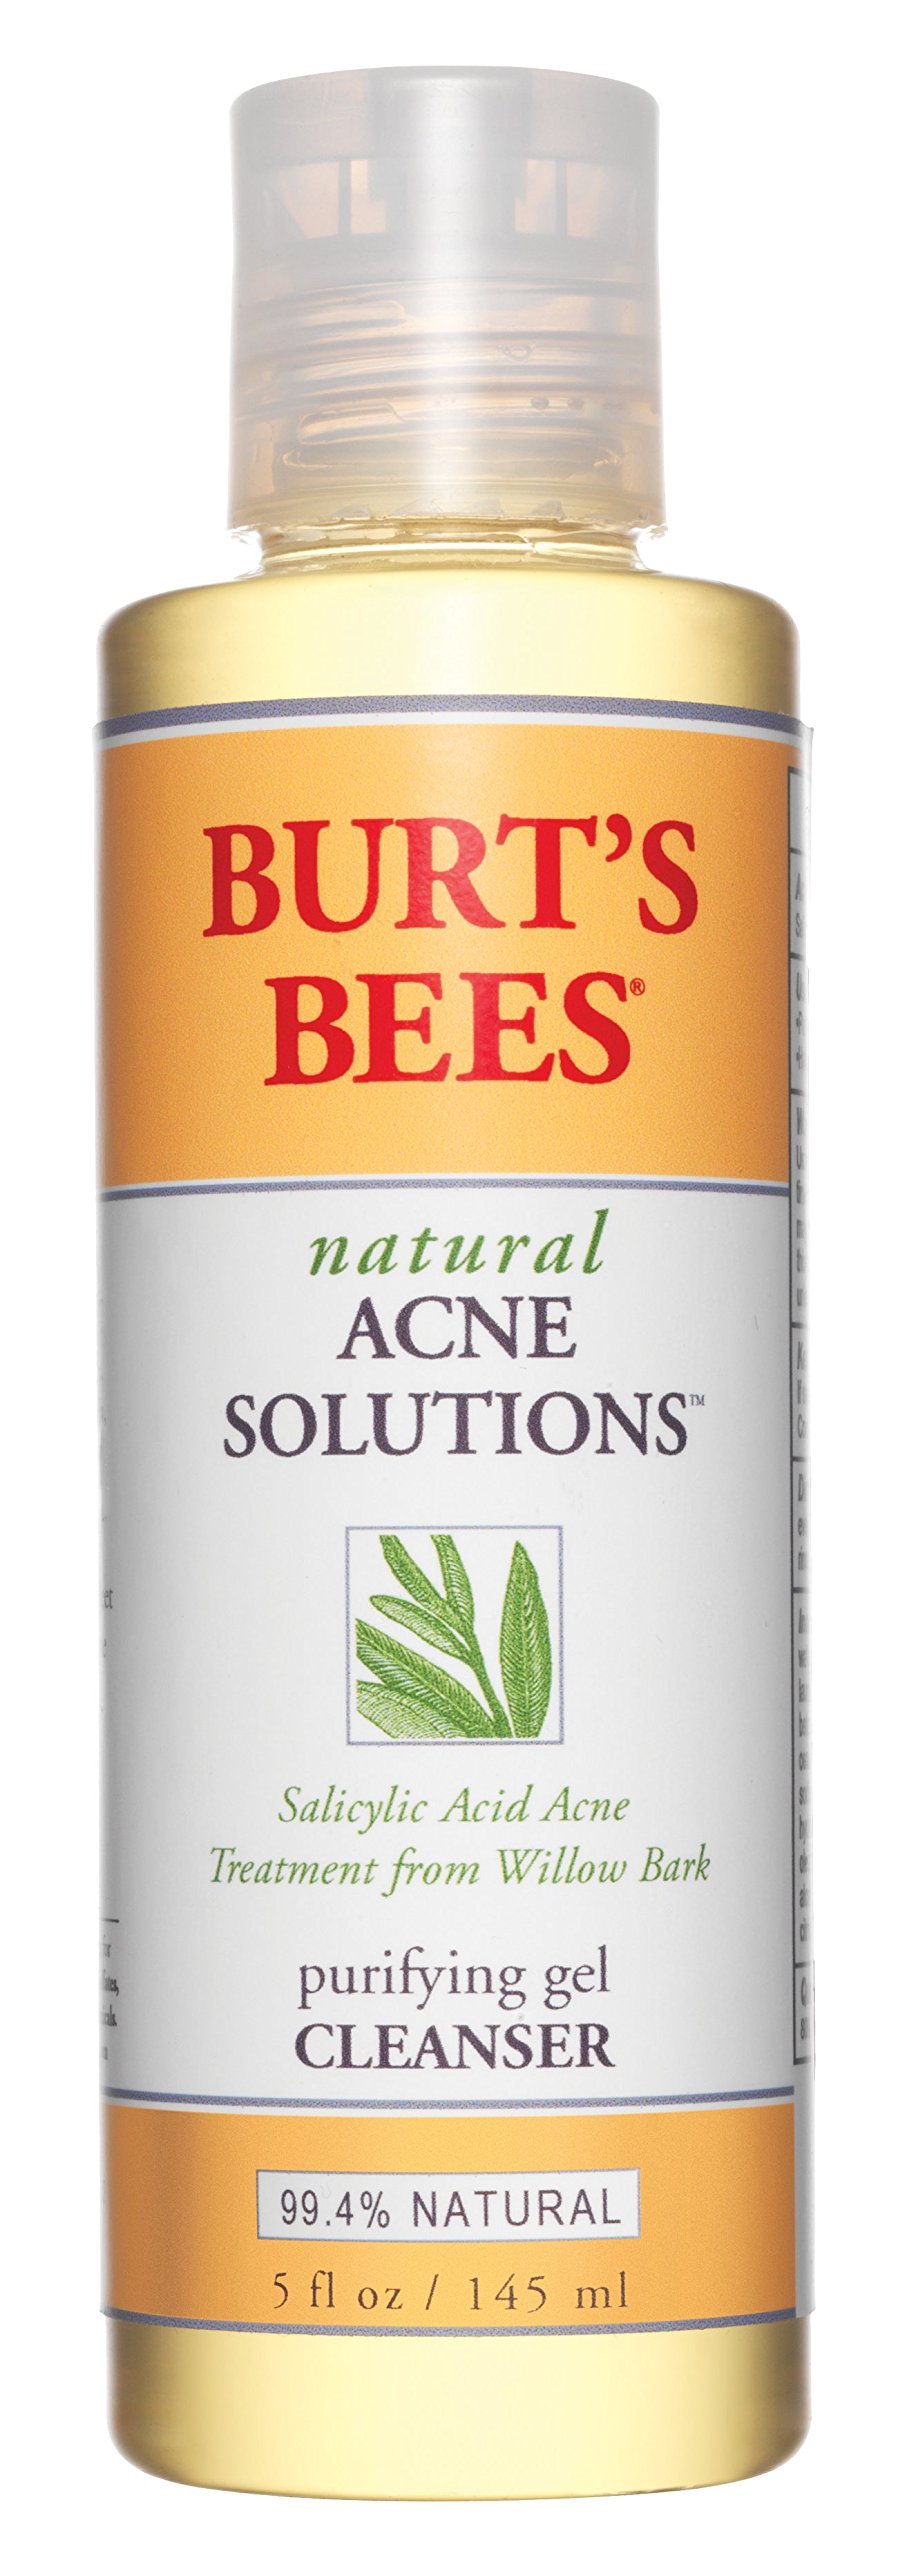 Burt's Bees Natural Acne Solutions Moisturizing Lotion